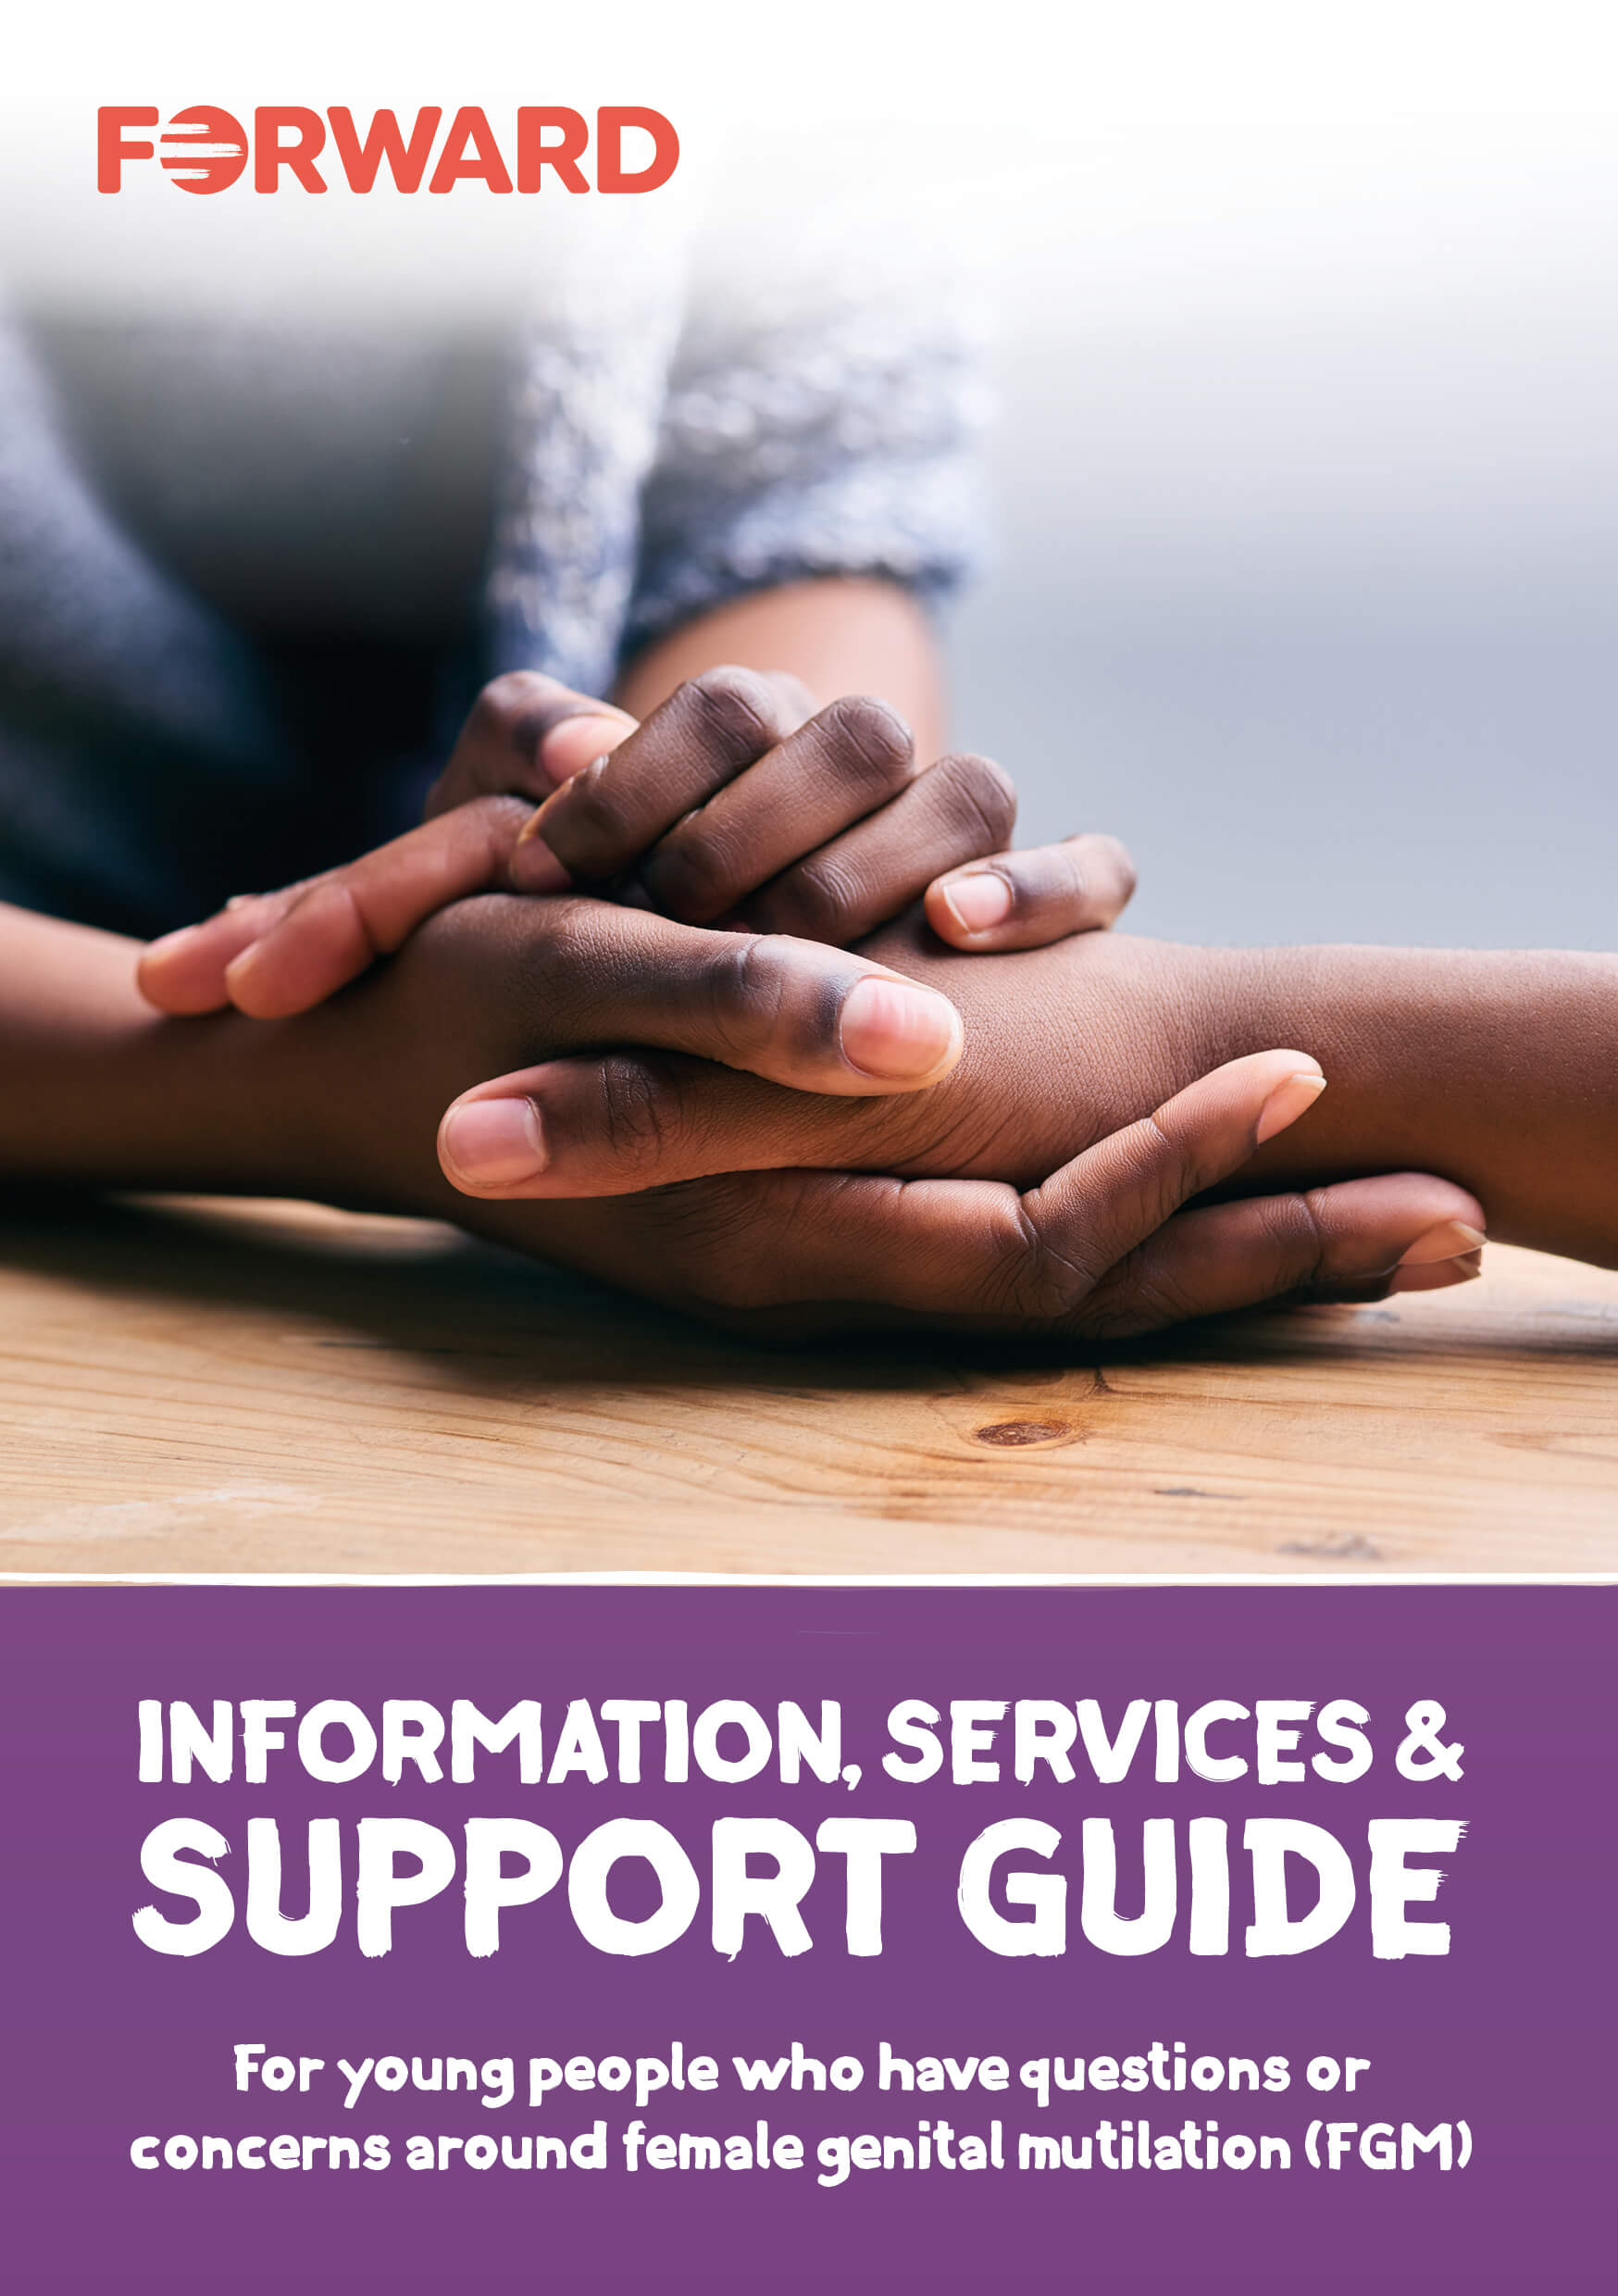 Information, Services and Support Guide: For young people who have questions or concerns around female genital mutilation (FGM)